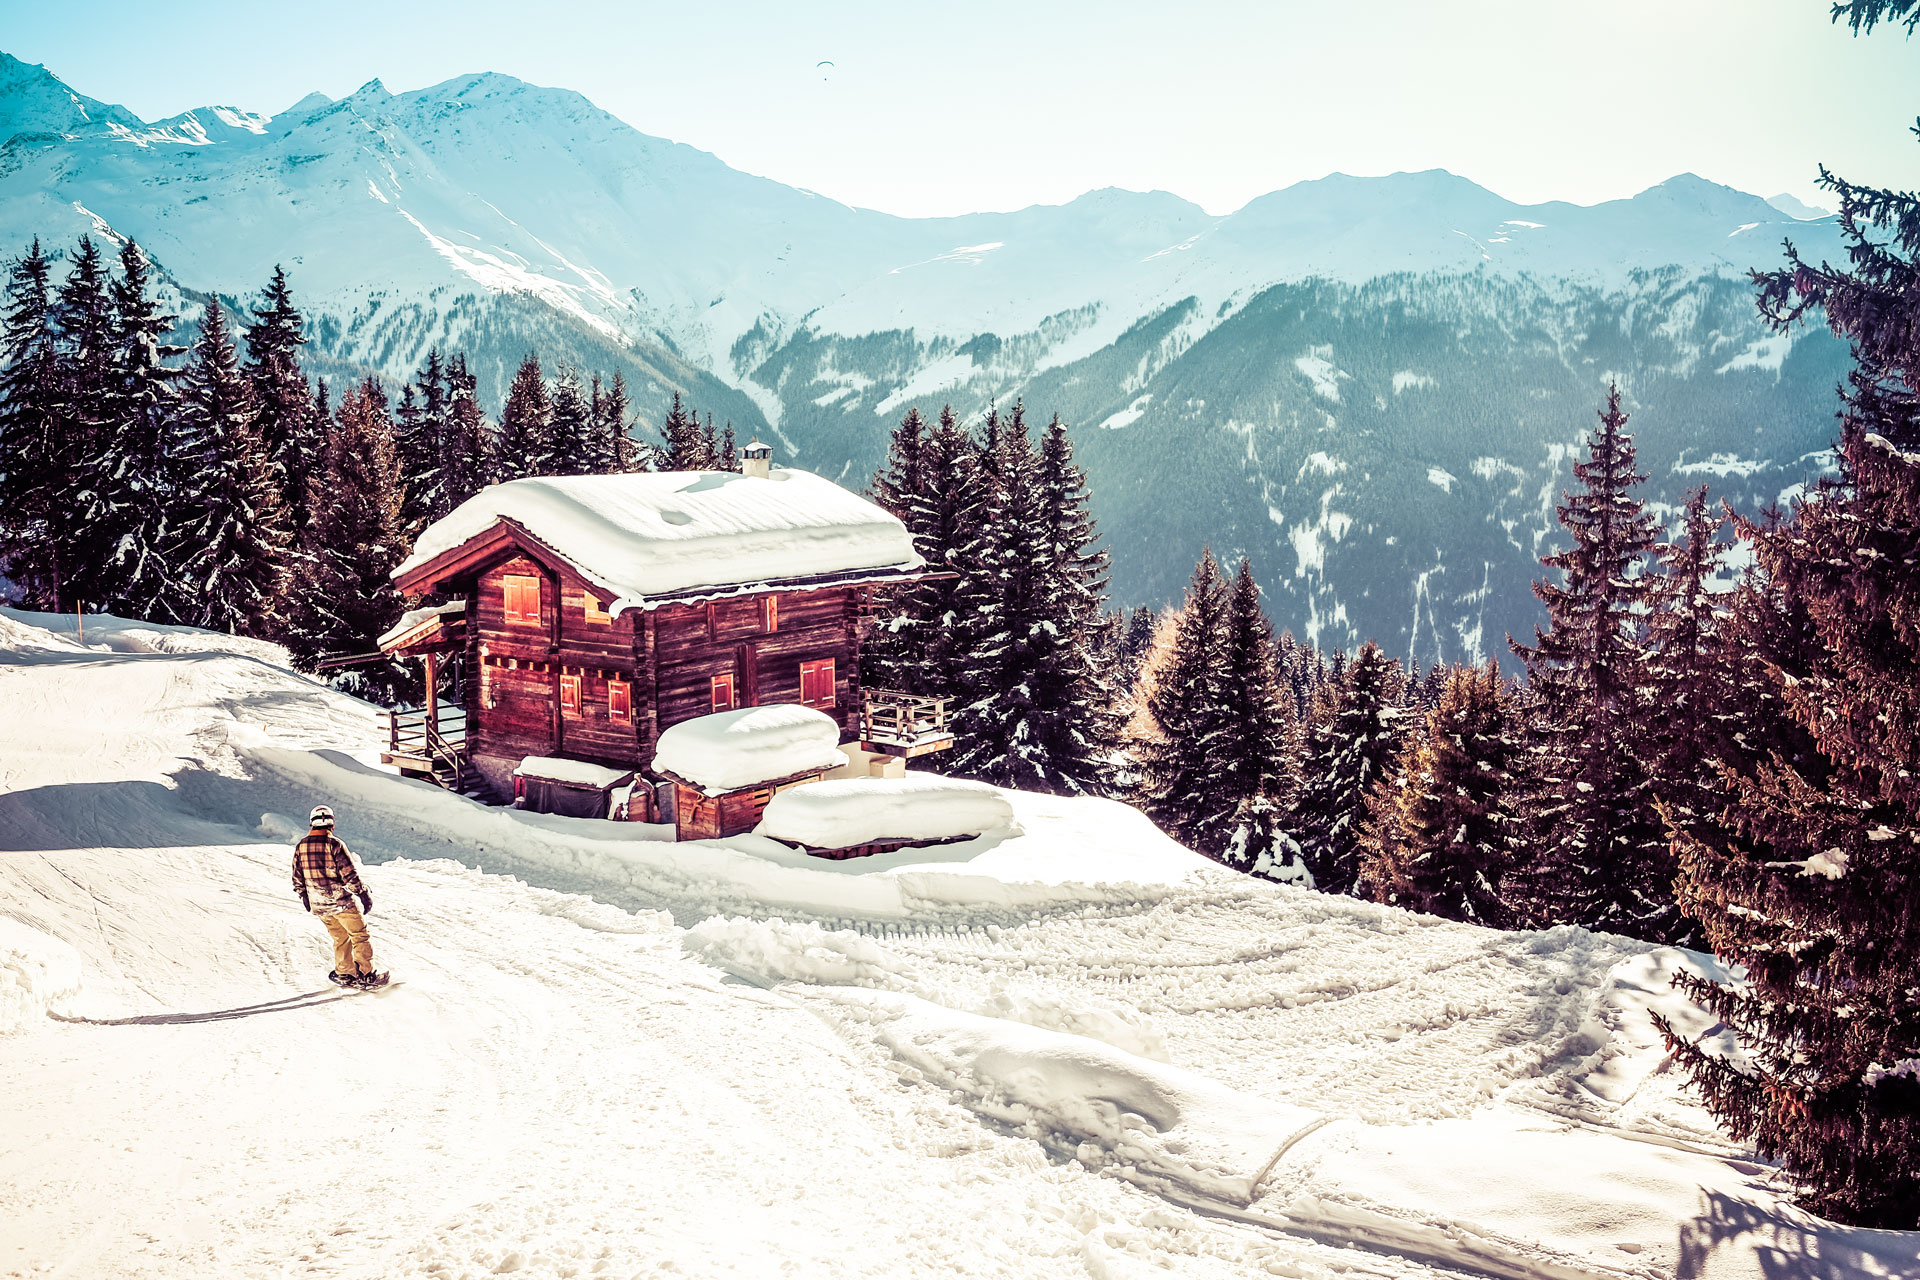 Verbier-Ski-Resort-Switzerland.jpg